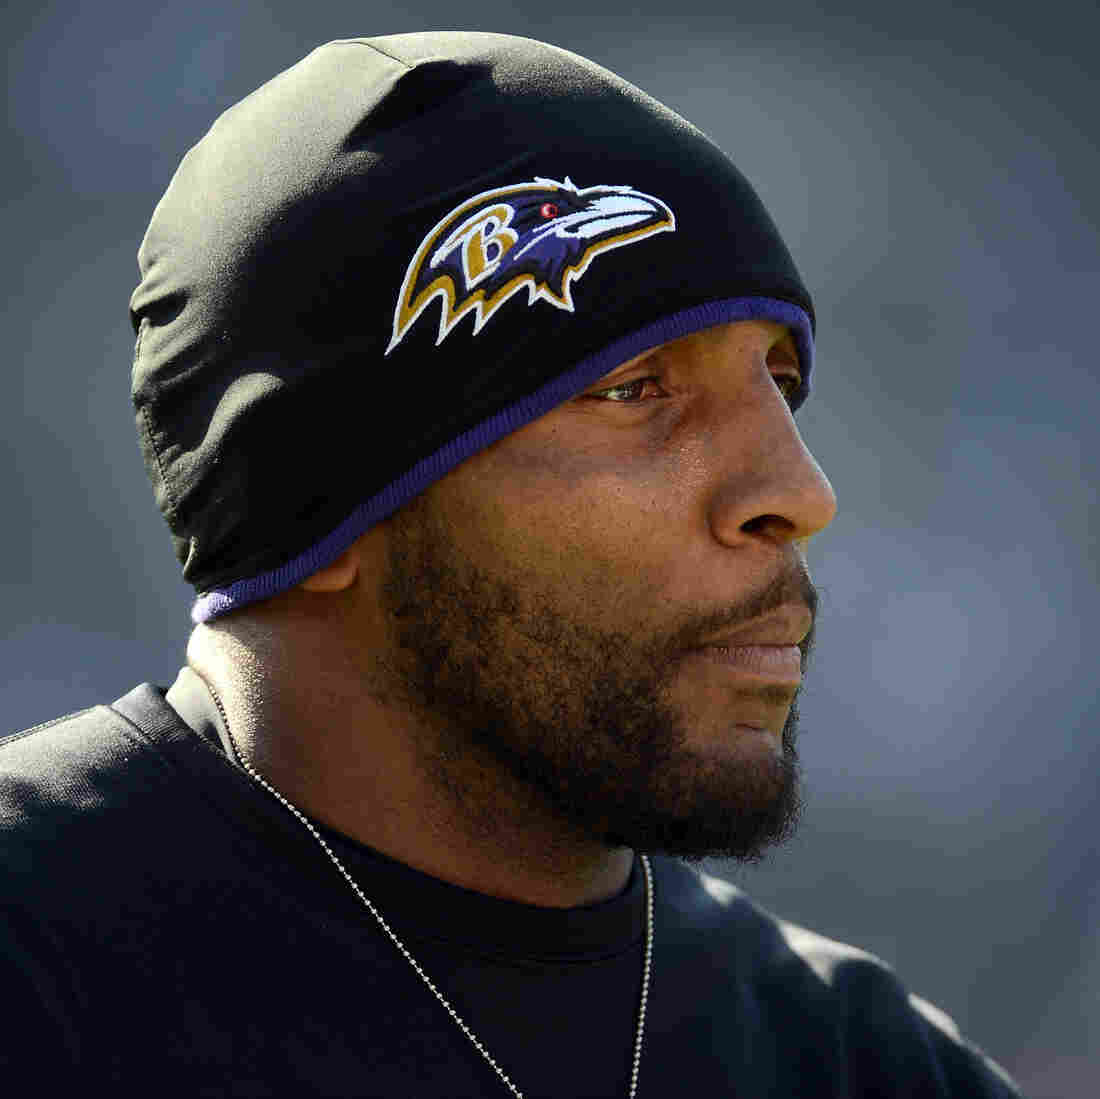 On Ray Lewis' Retirement, Some Media Fail To Mention 2000 Murder Case